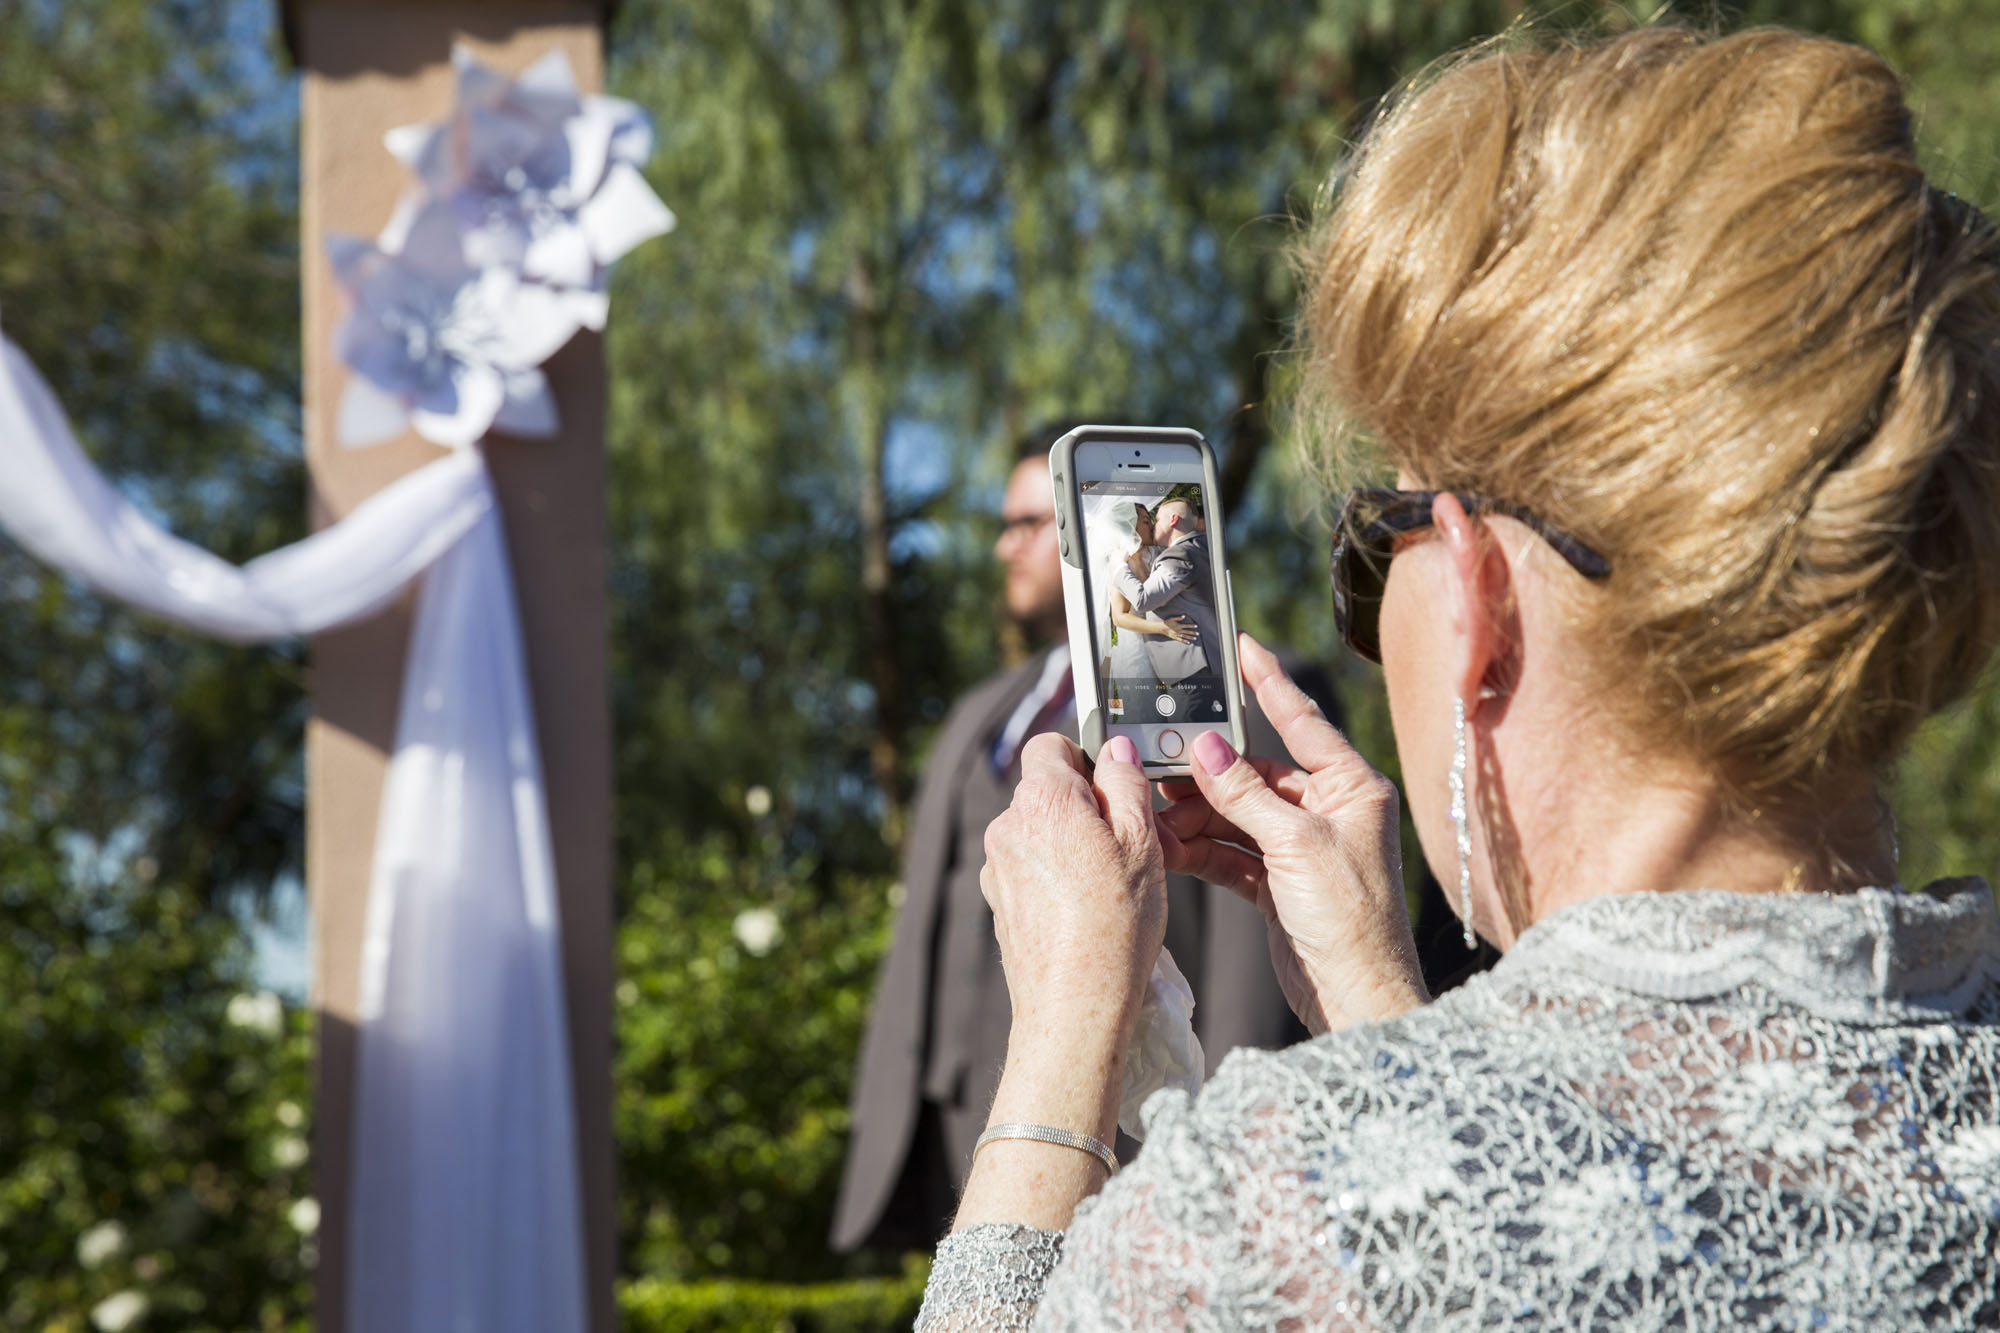 Capturing the moment on cell phone